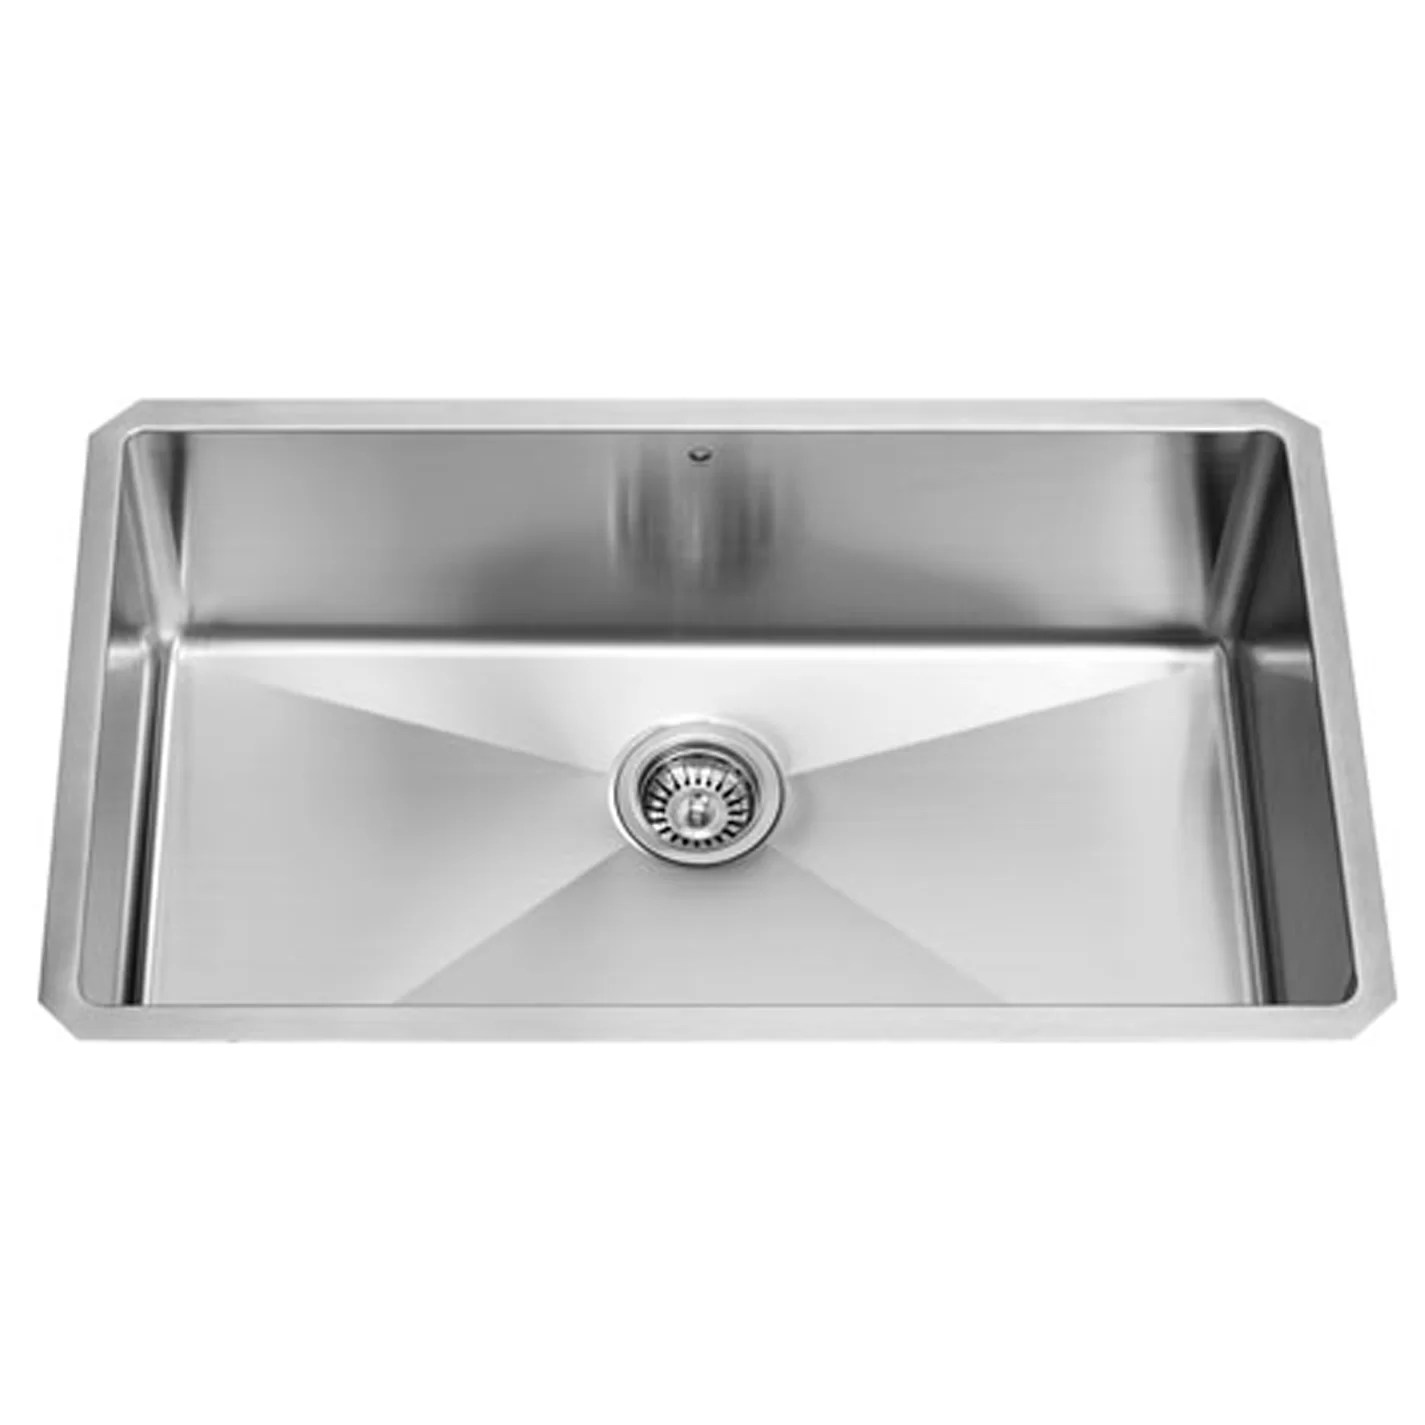 stainless steel kitchen sink reviews layout ideas vigo 32 inch undermount single bowl 16 gauge